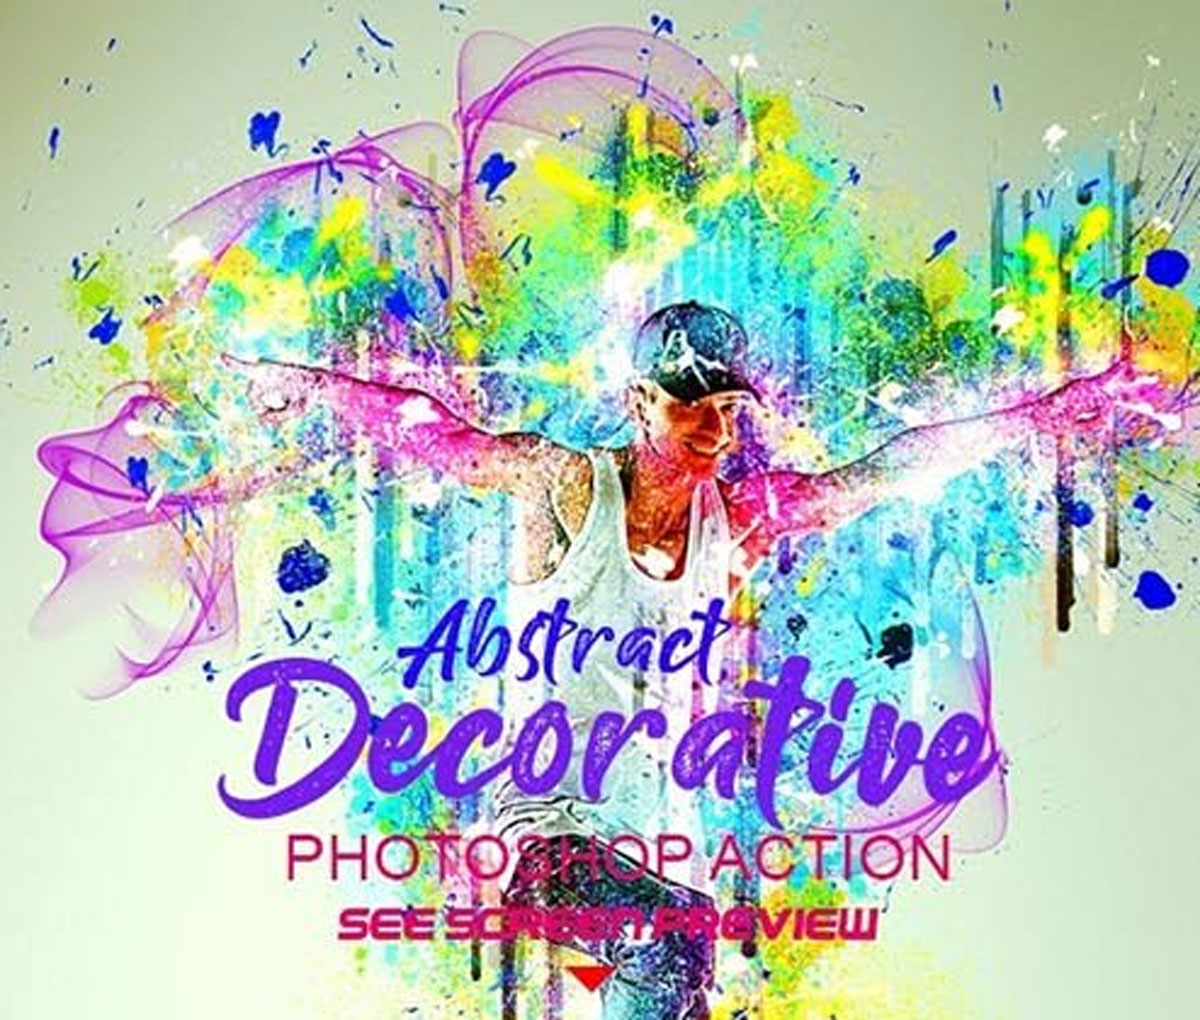 Abstract Painting Photoshop Action 26539921